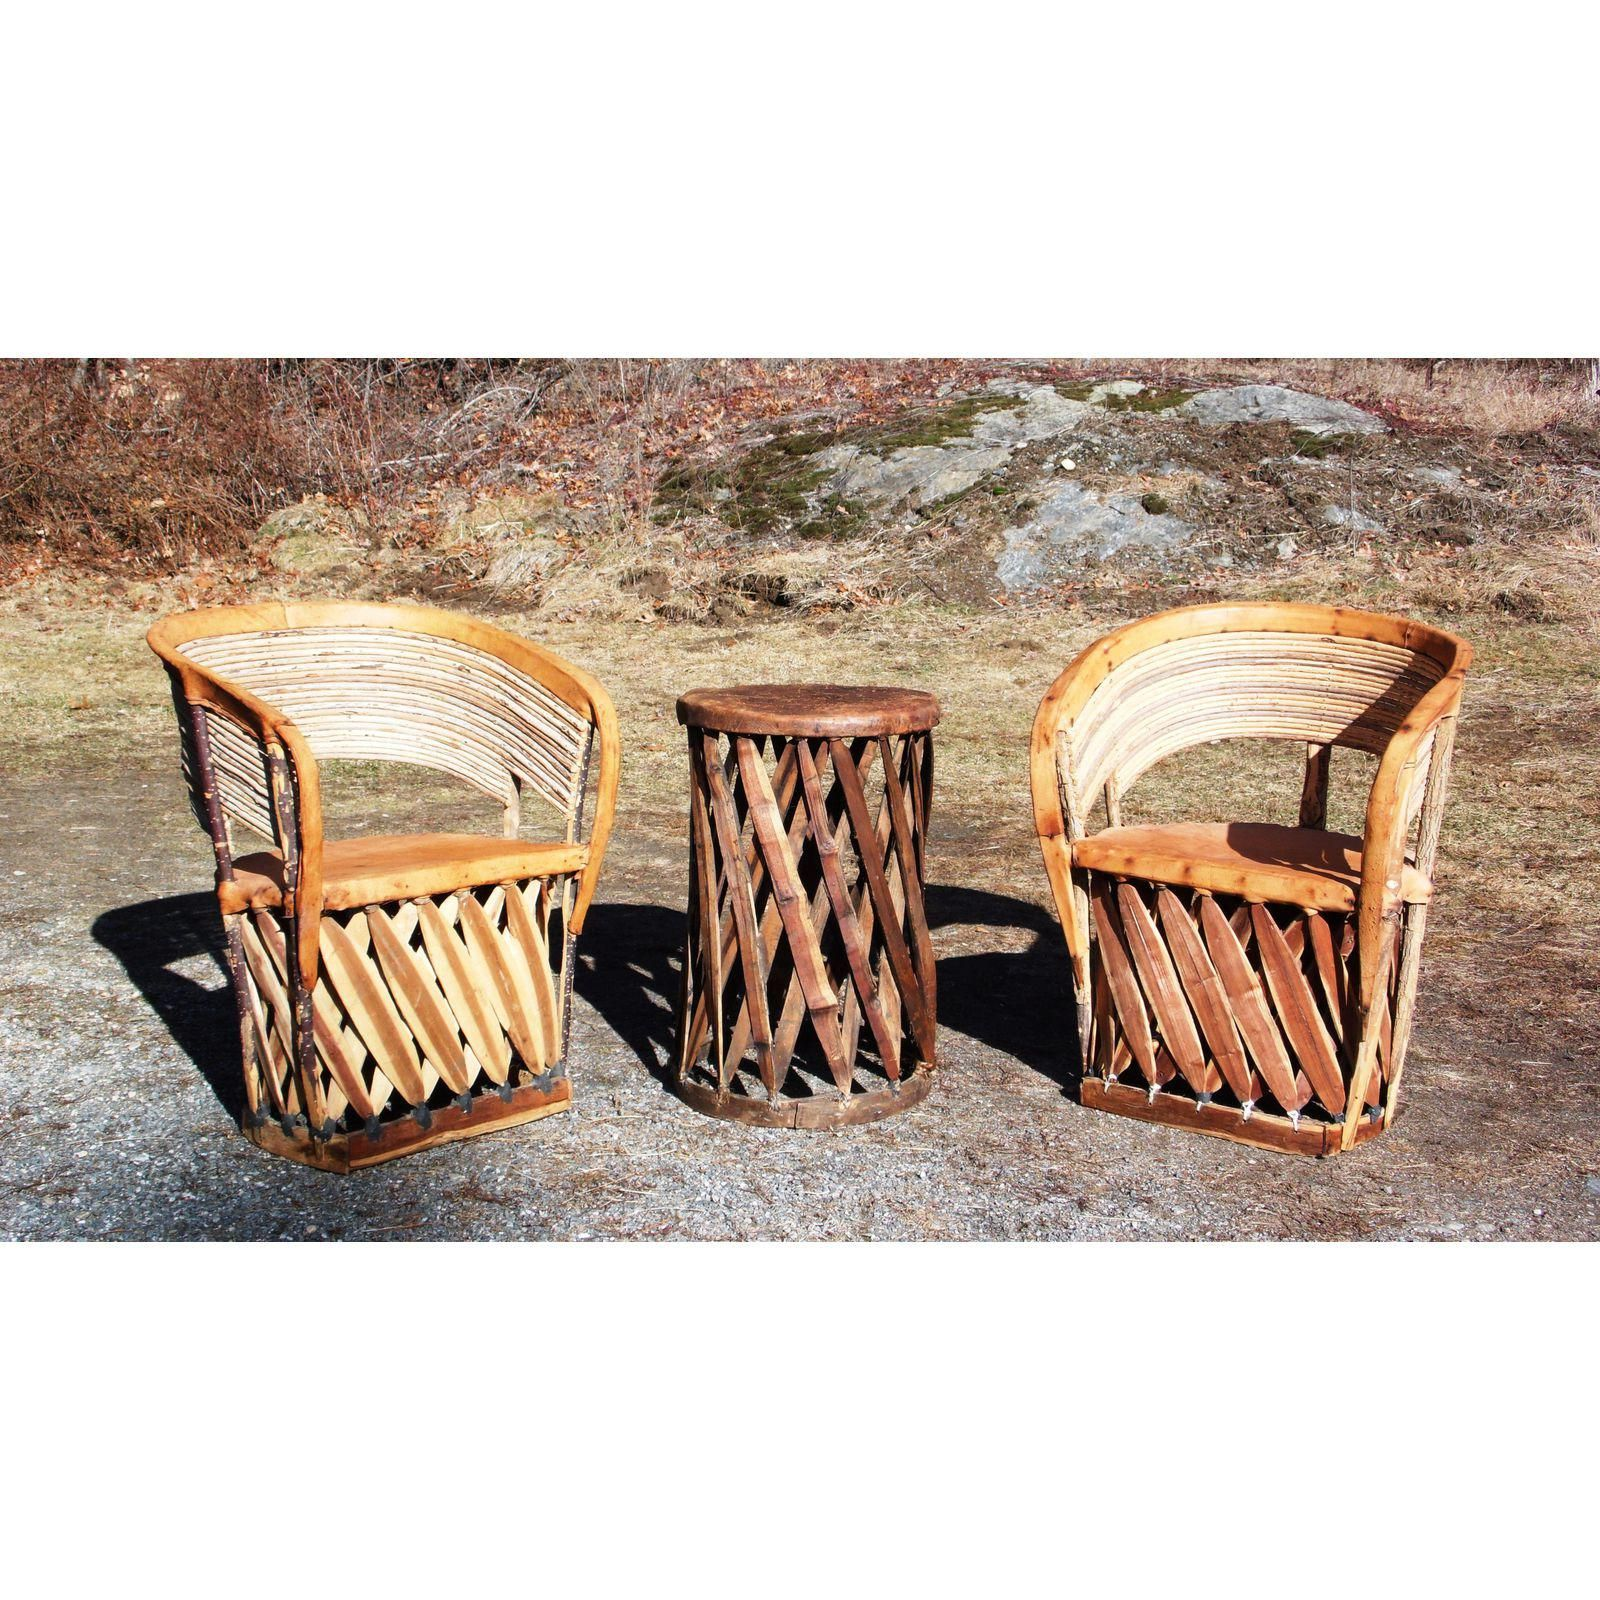 Vintage Mexican Equipale 2 Leather Barrel Chairs Table Patio